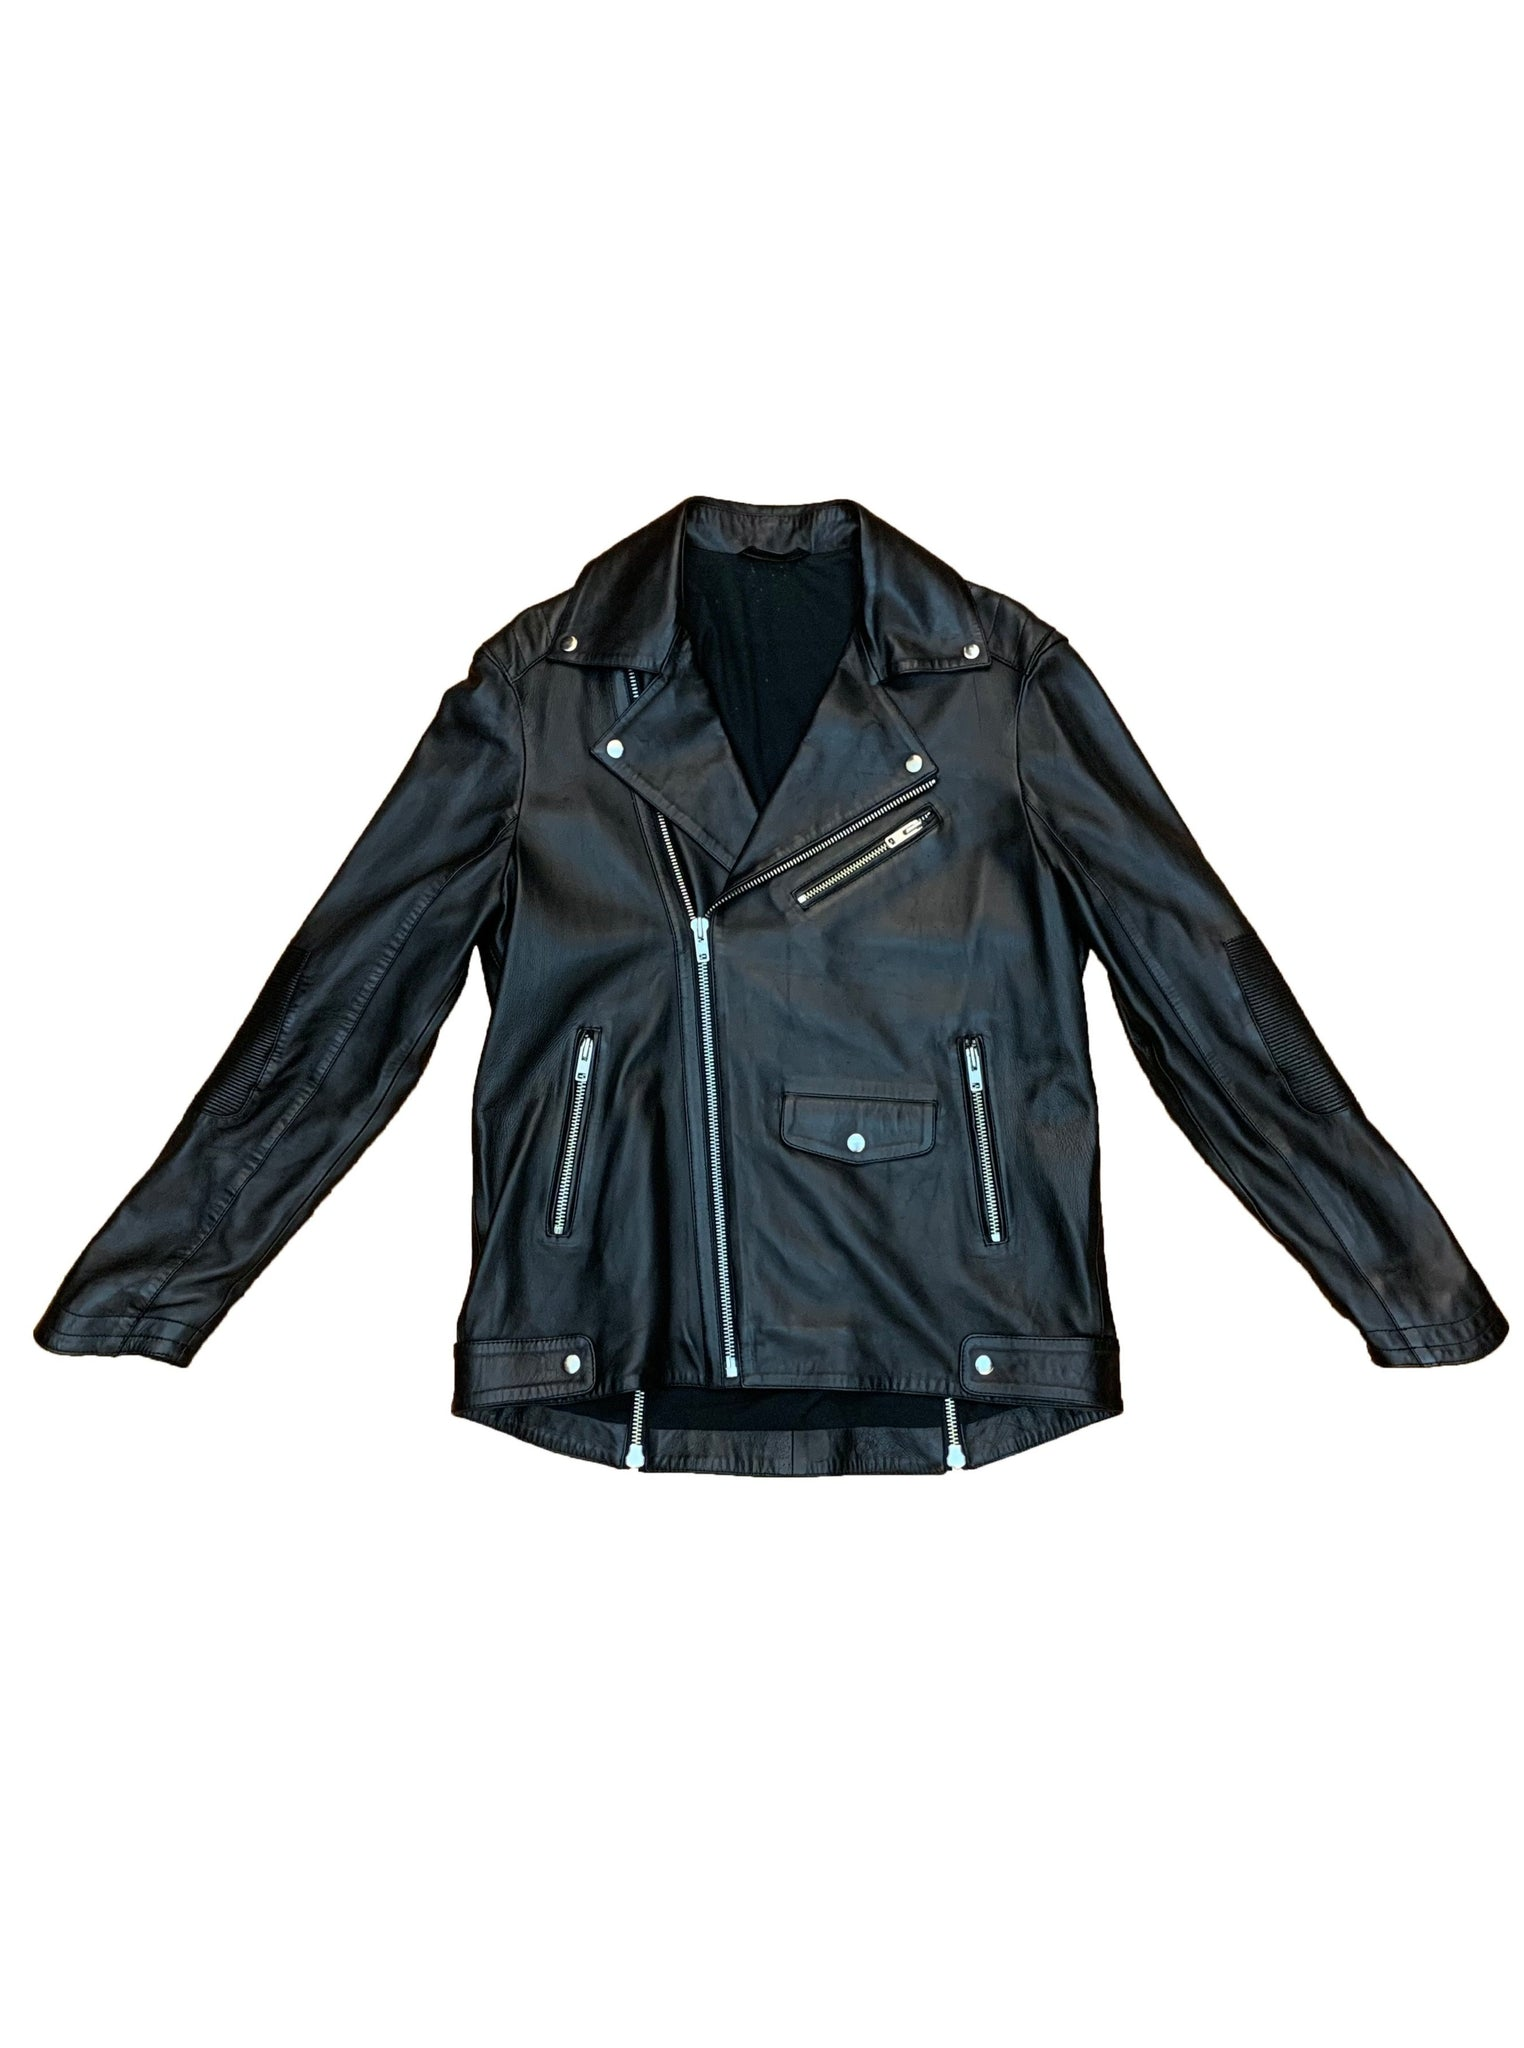 French Leather Biker